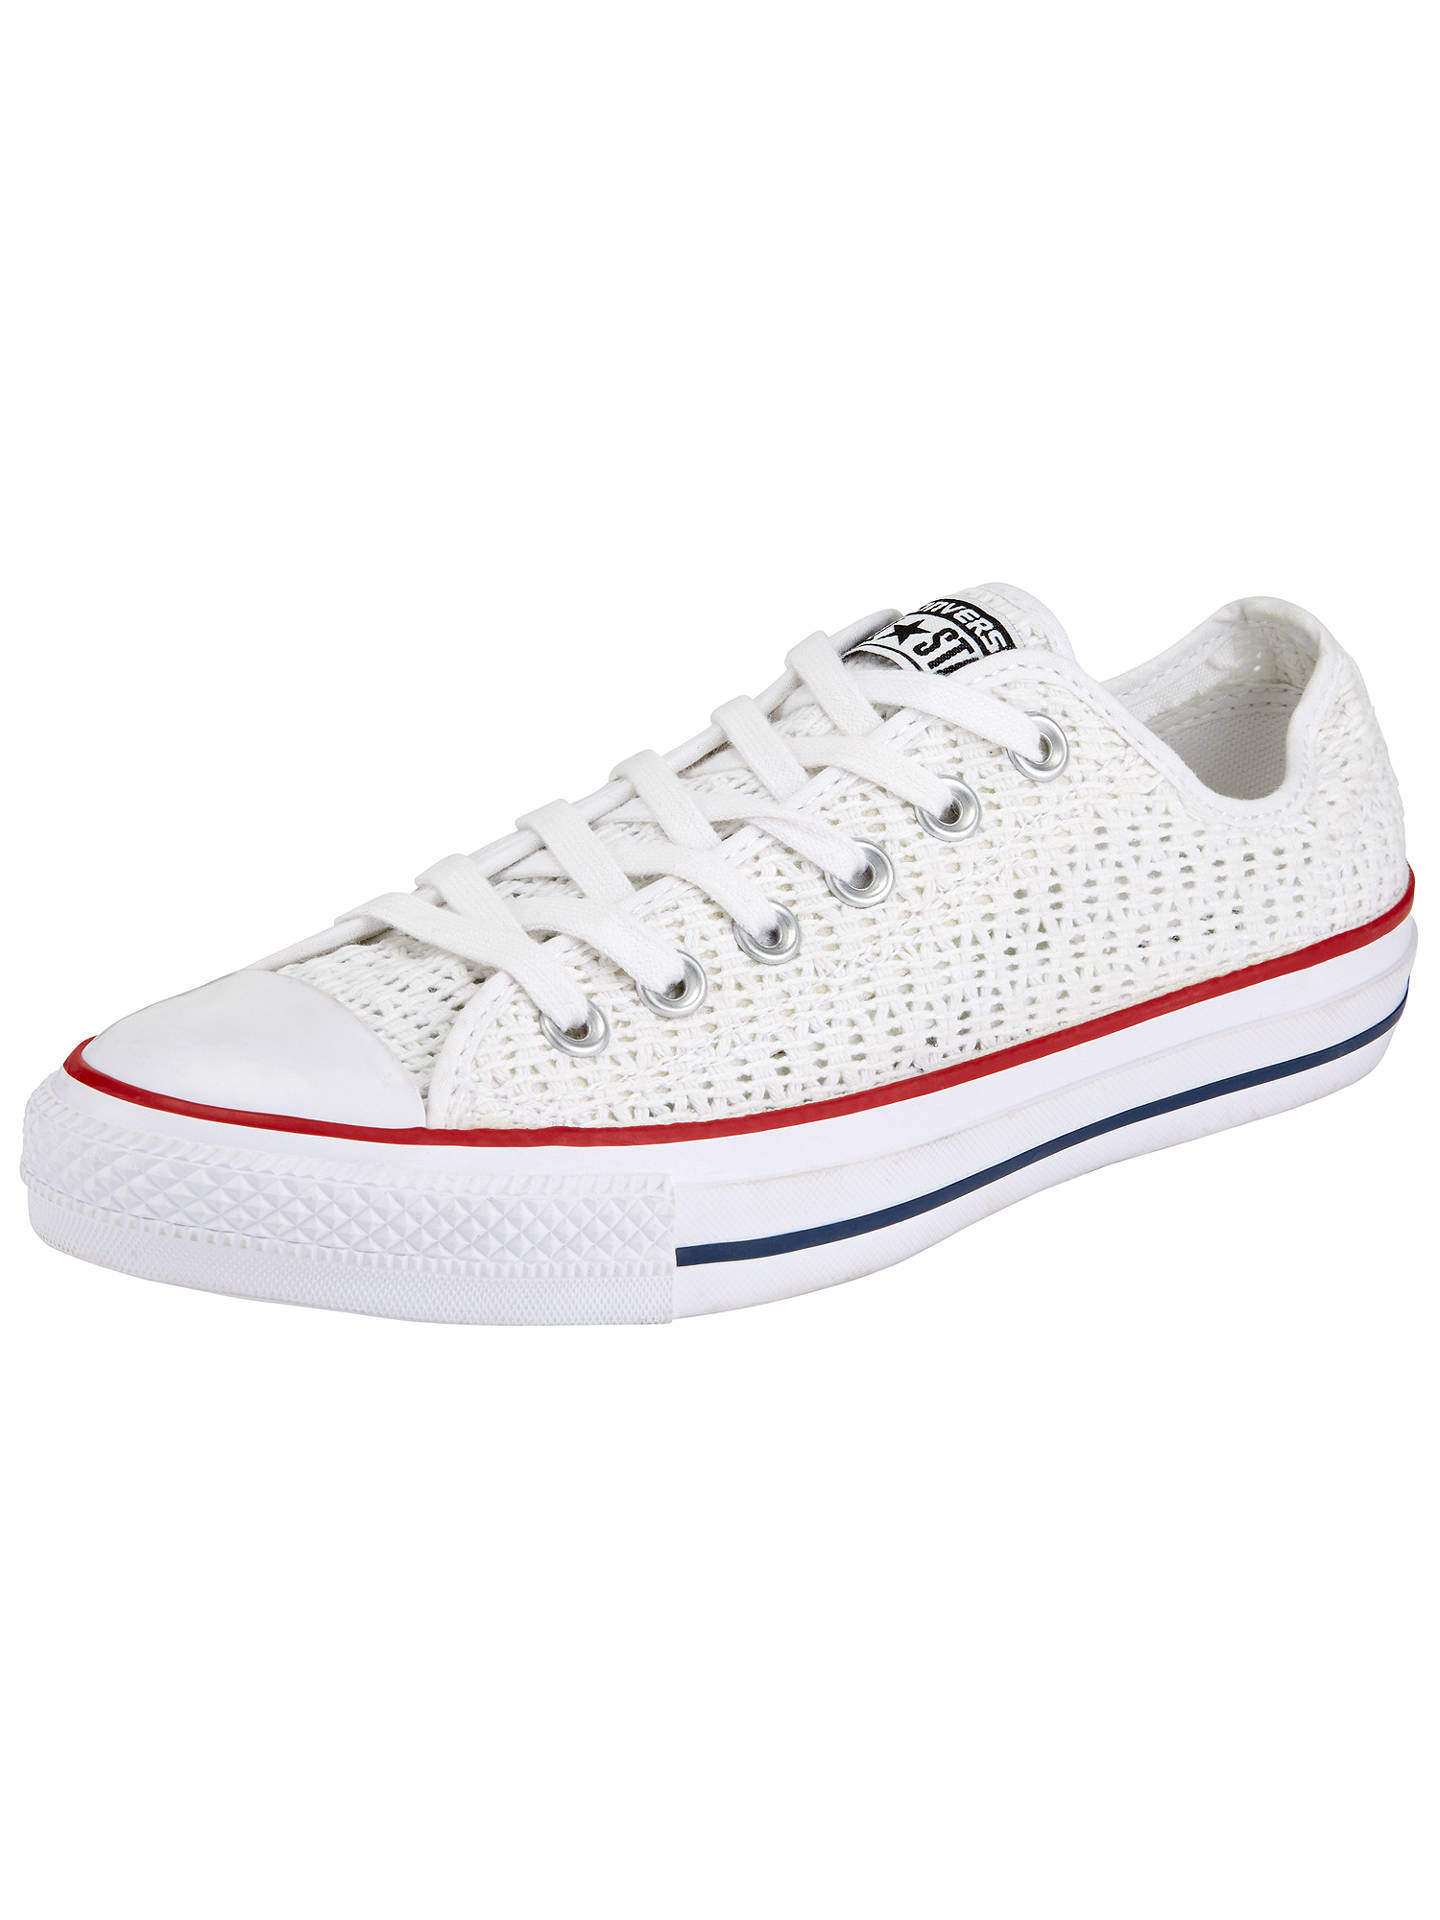 8bd3c44fcf92 Converse Chuck Taylor All Star Ox Crochet Trainers at John Lewis ...